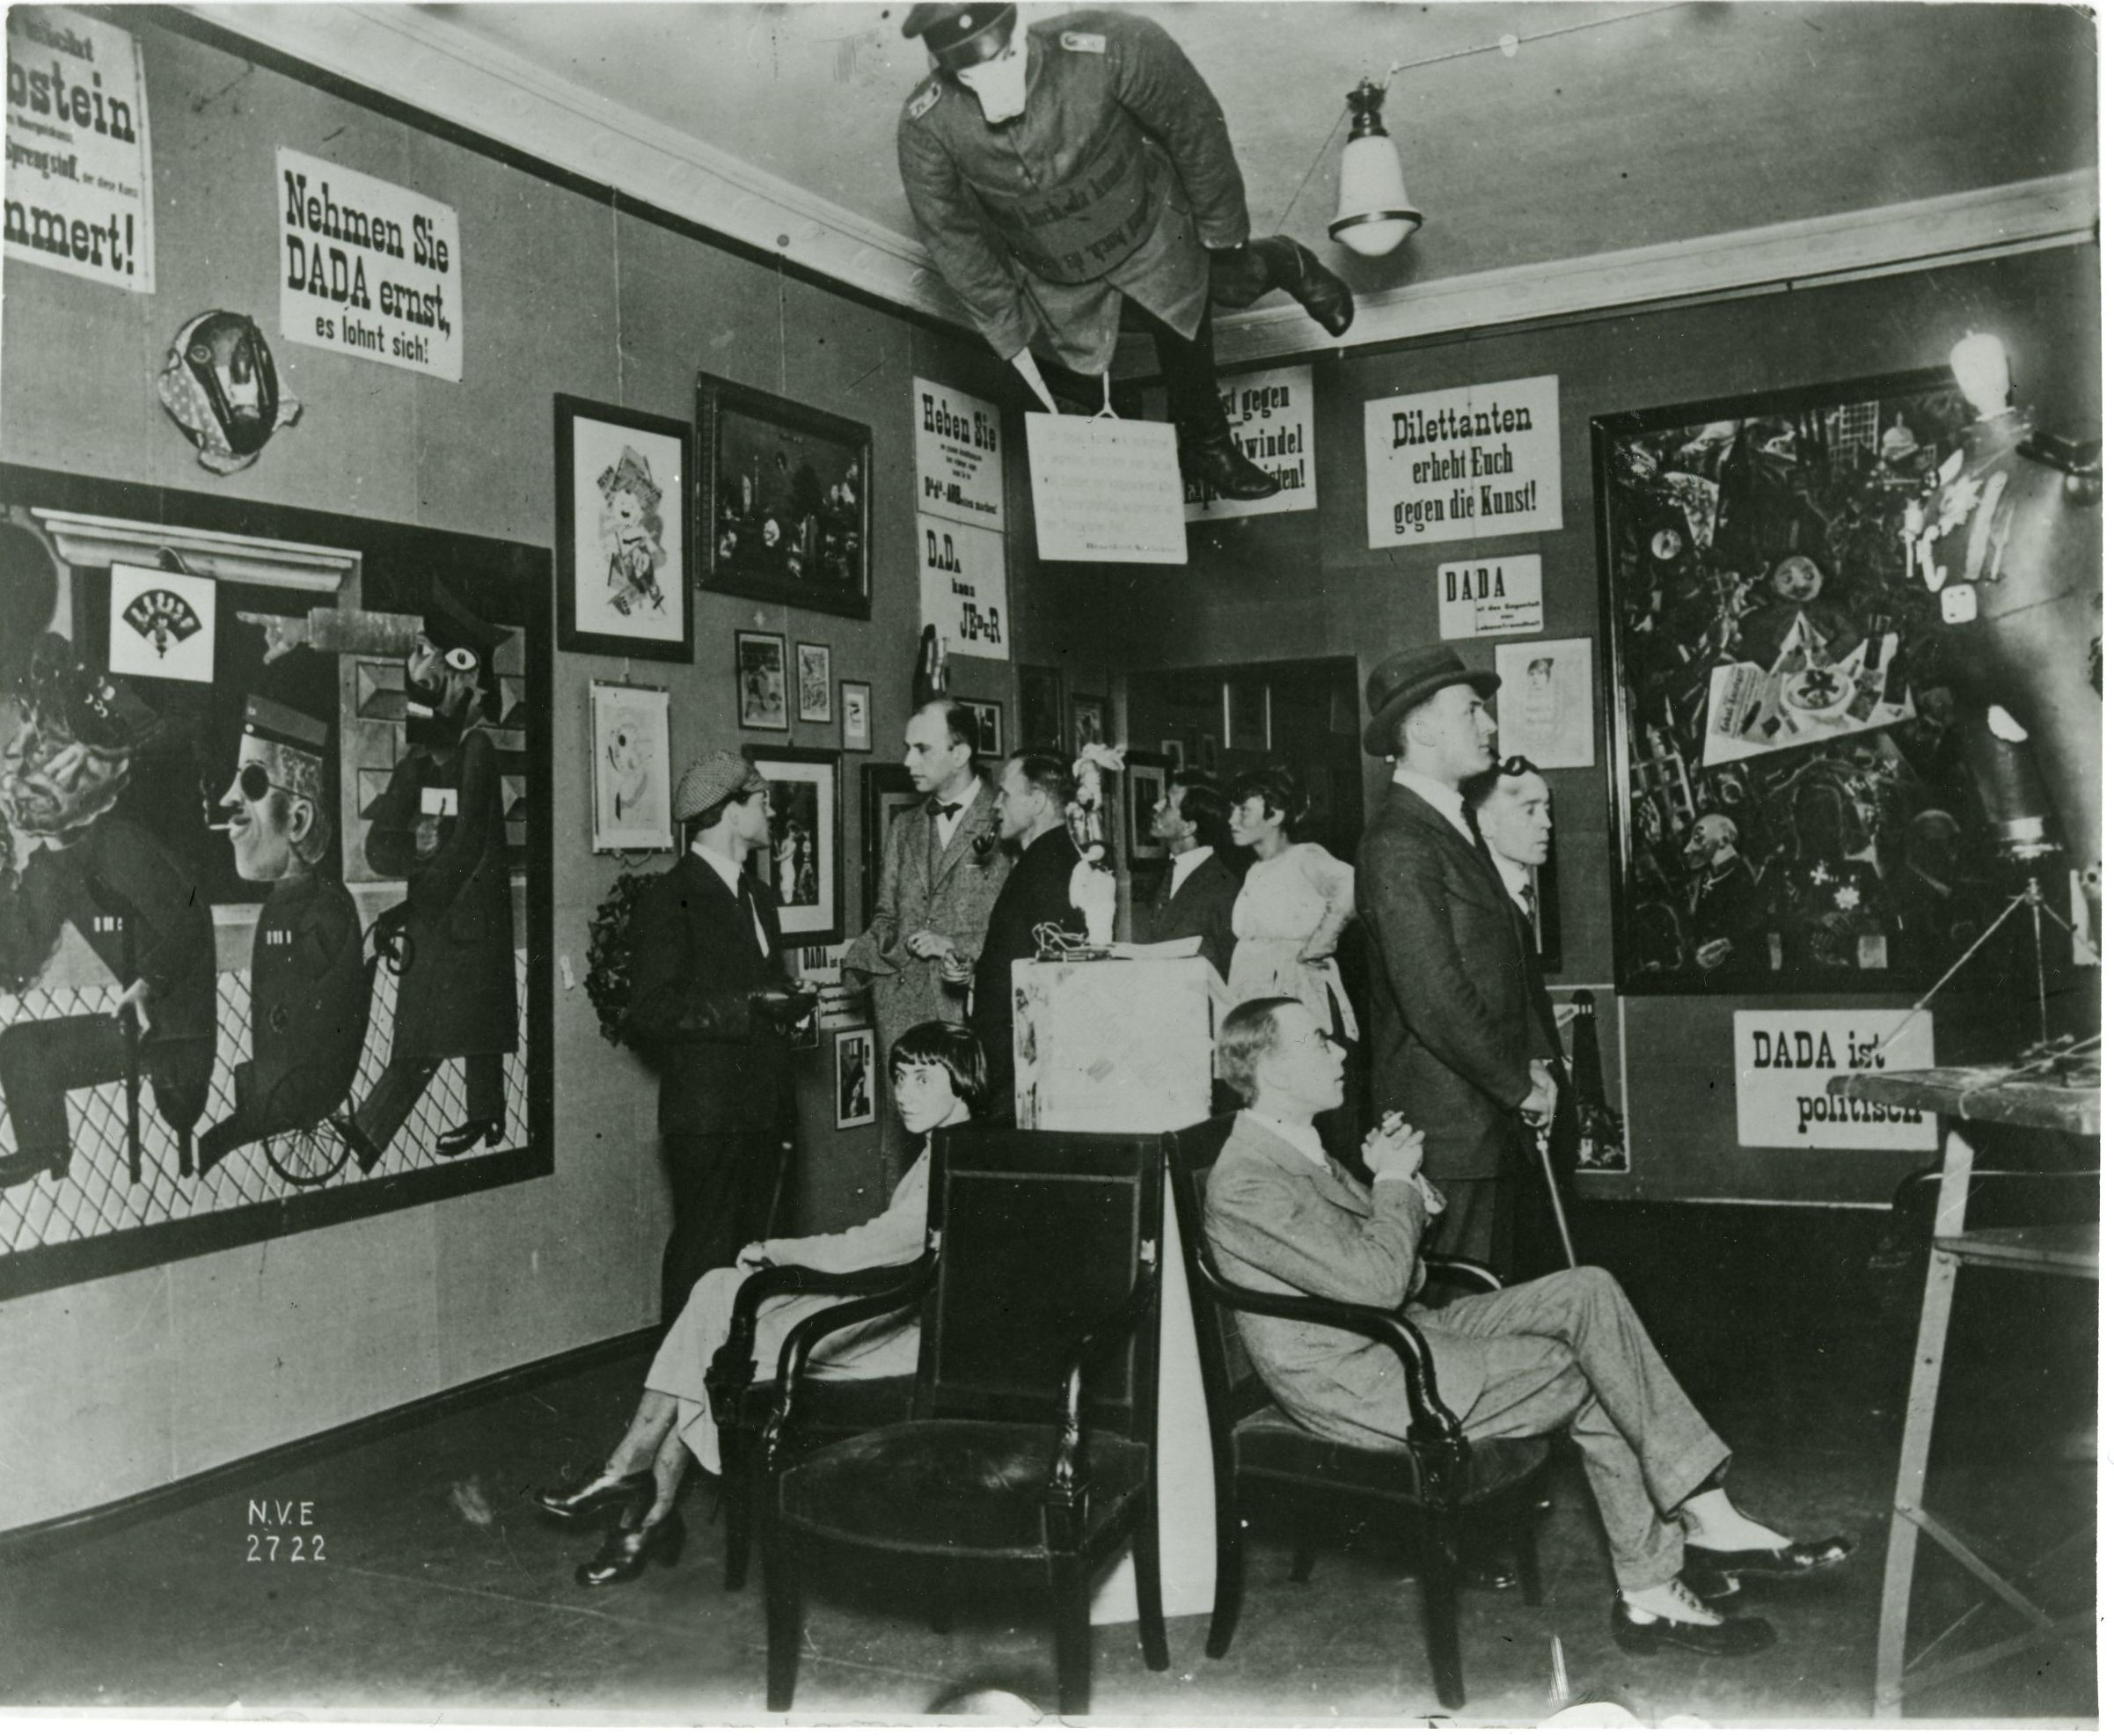 First International Dada Fair (Berlin 1920). Berlin Dada pioneered many aspects of modern, and capitalist, art and culture; assemblage, collage, montage, the indexical object and the media stunt, and did so in solidarity with the unfolding German Revolution. Several artists from Berlin Dada were arrested following this exhibition on charges that included insulting the German Army (in particular for Rudolf Schlichter and John Heartfield's  Prussian Archangel  [above] depicting a dummy in a German military uniform wearing a pig mask).